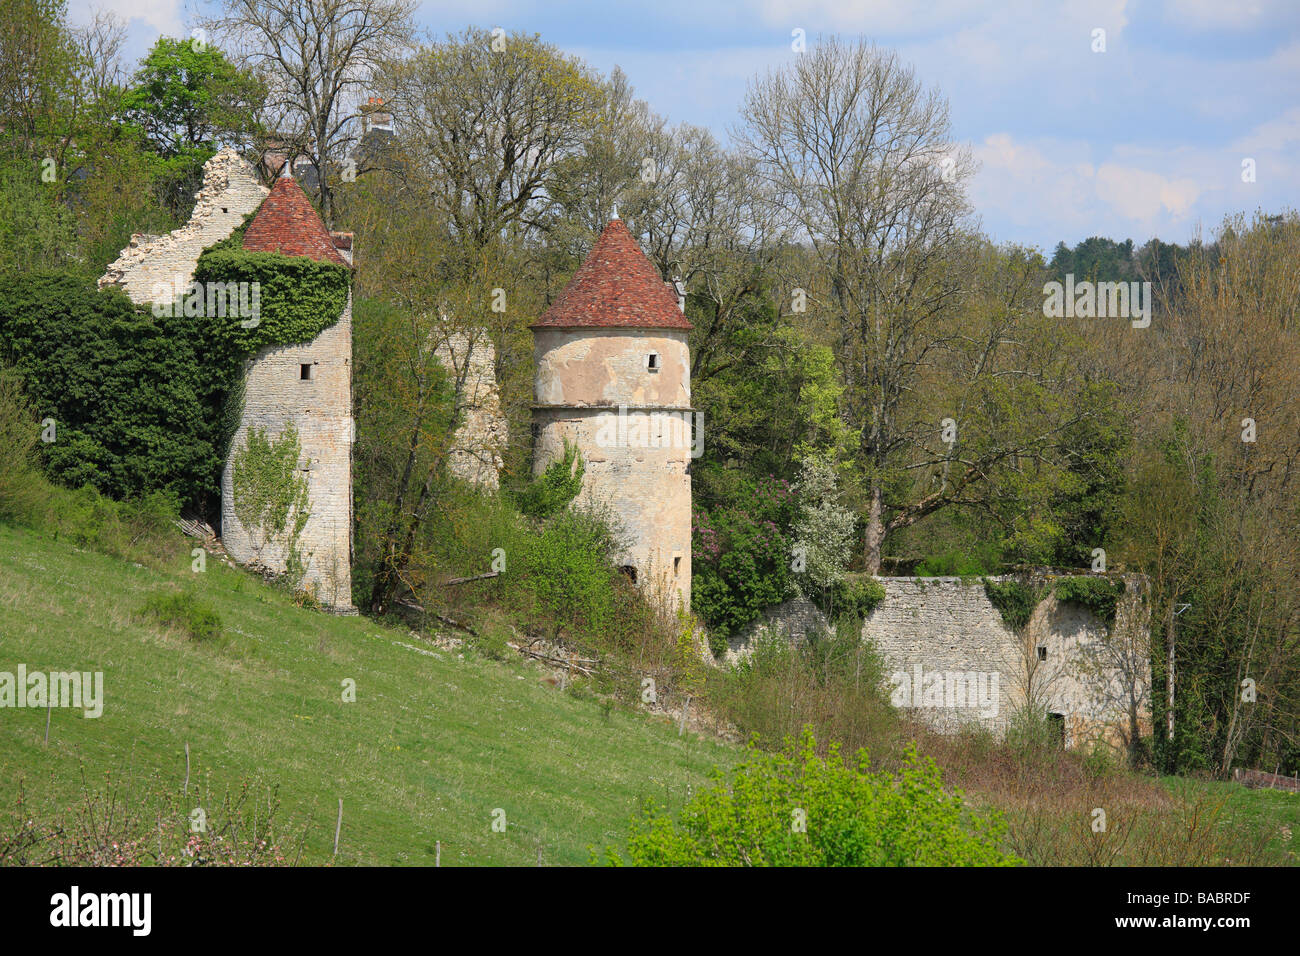 Ruins of medieval chateau near Chastenay, Arcy sur Cure in Burgundy, France - Stock Image